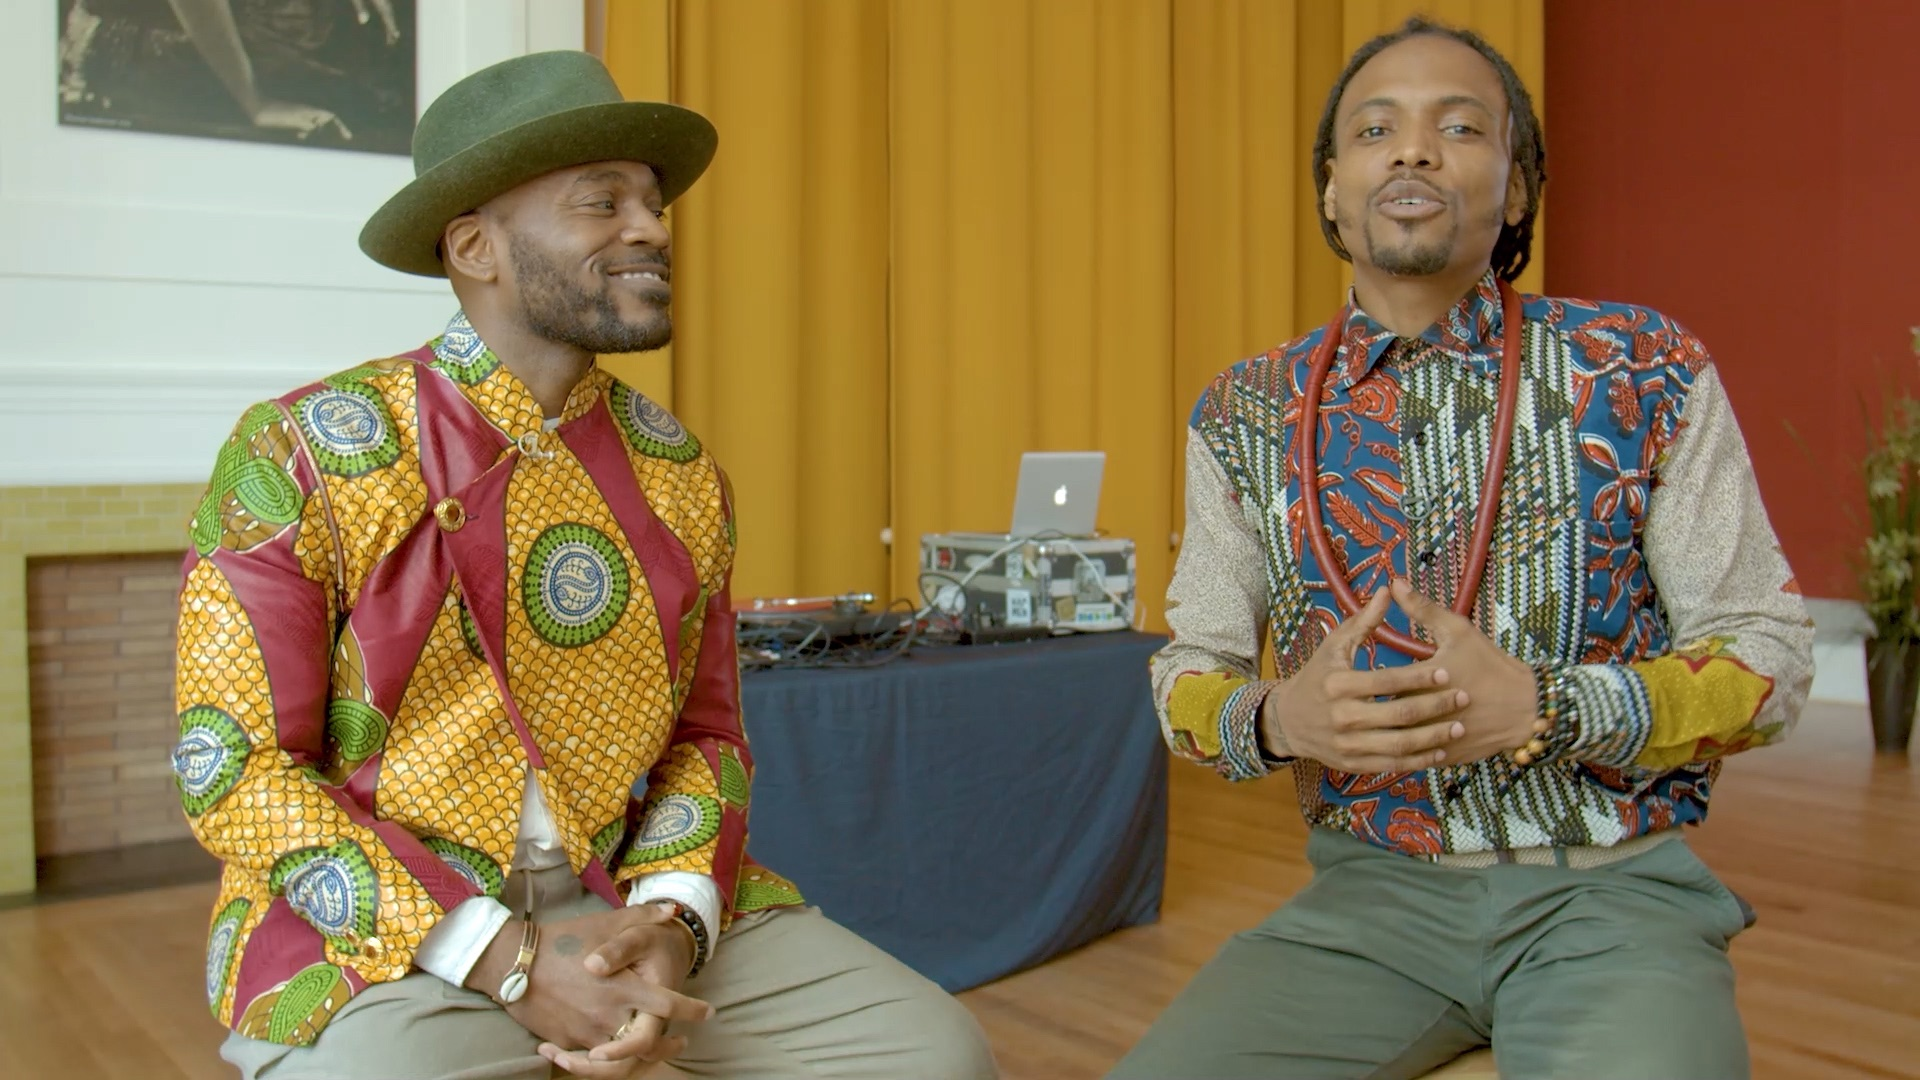 Two young black men sit on stools in a room and both wear colorful West African shirts. A curtain and DJ set up is visible in background